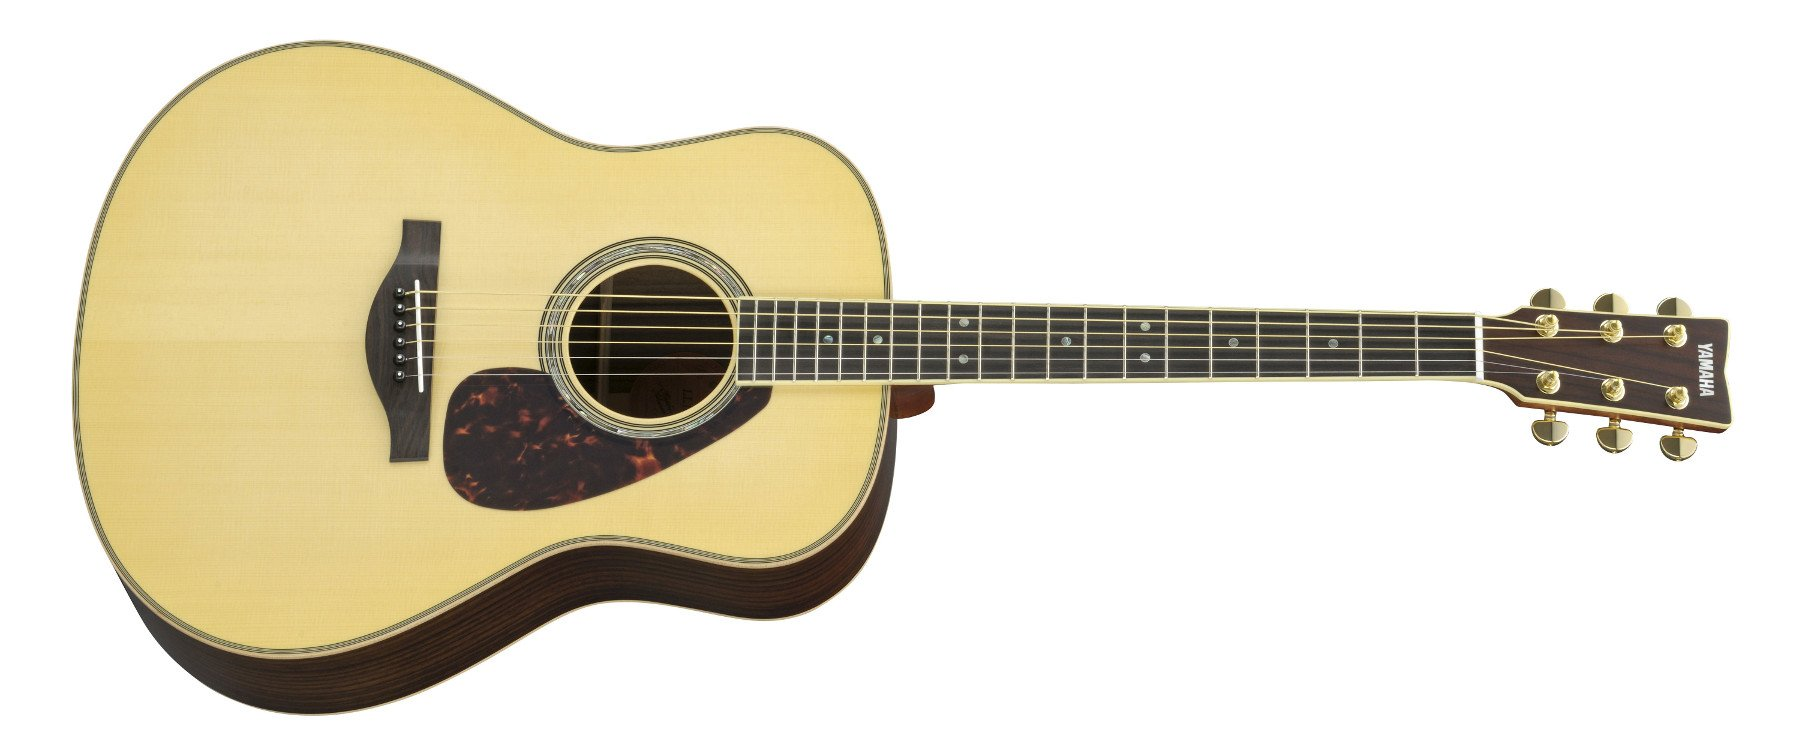 Hand-Crafted Jumbo Acoustic/Electric Guitar